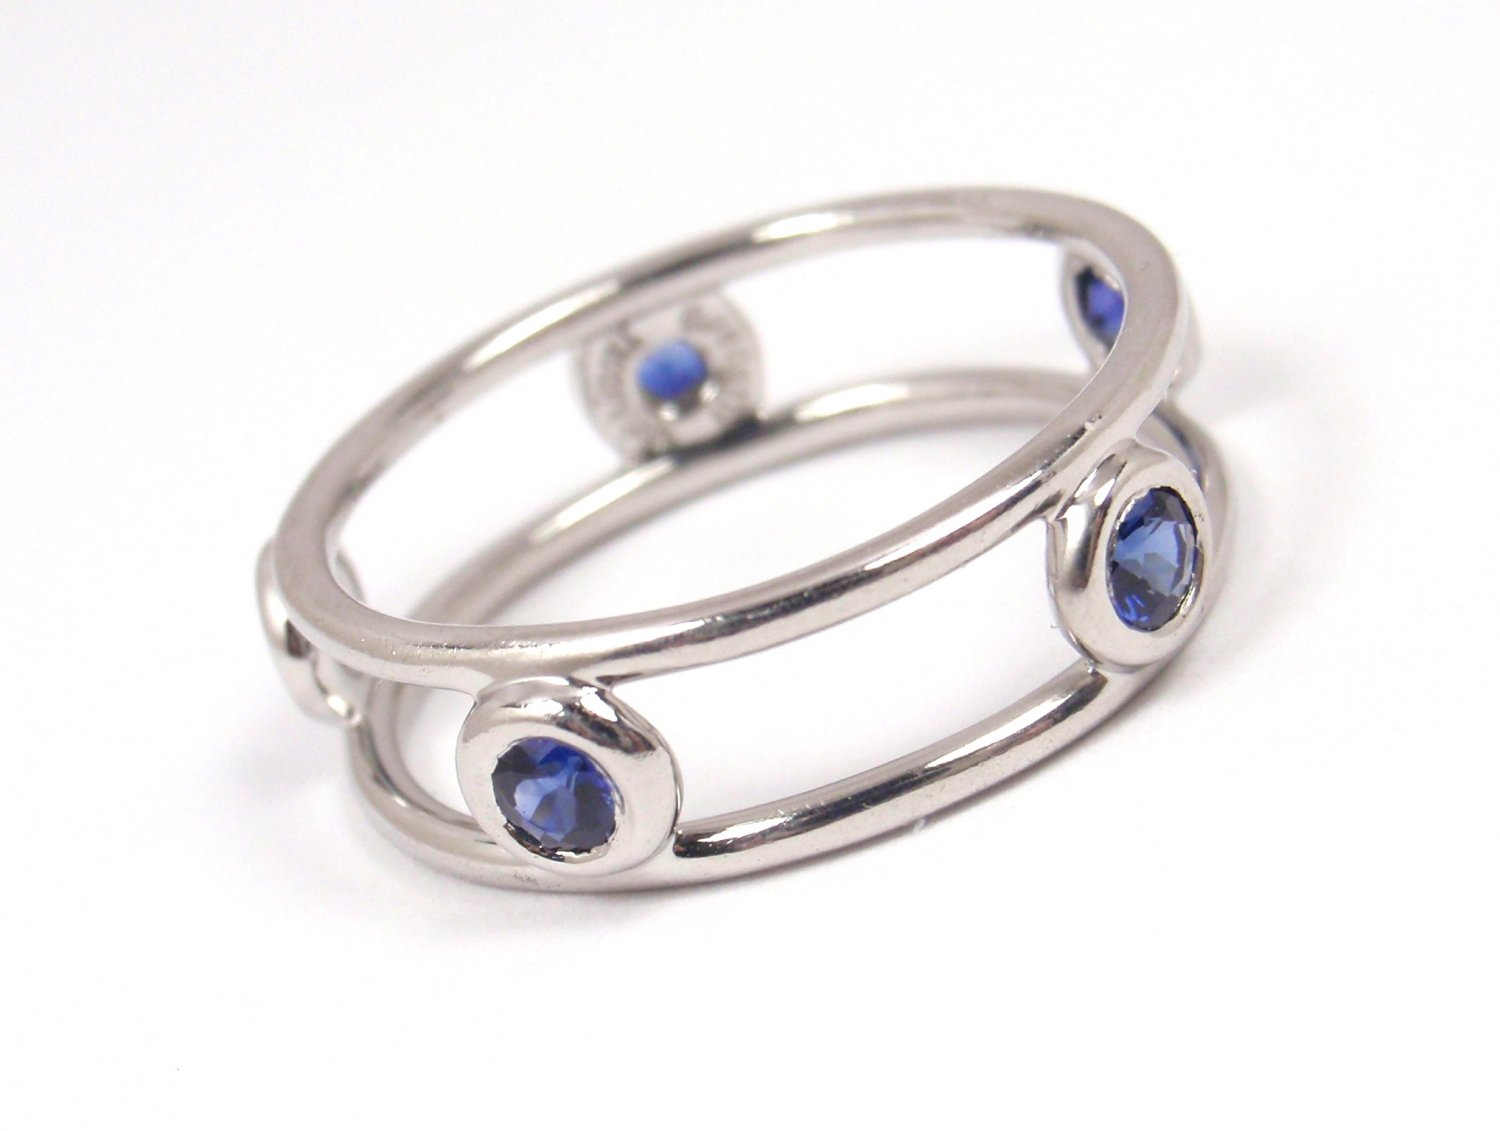 Tiffany & Co Peretti Platinum Color By the Yard Double Wire Blue Sapphire Ring Size 5-1/4